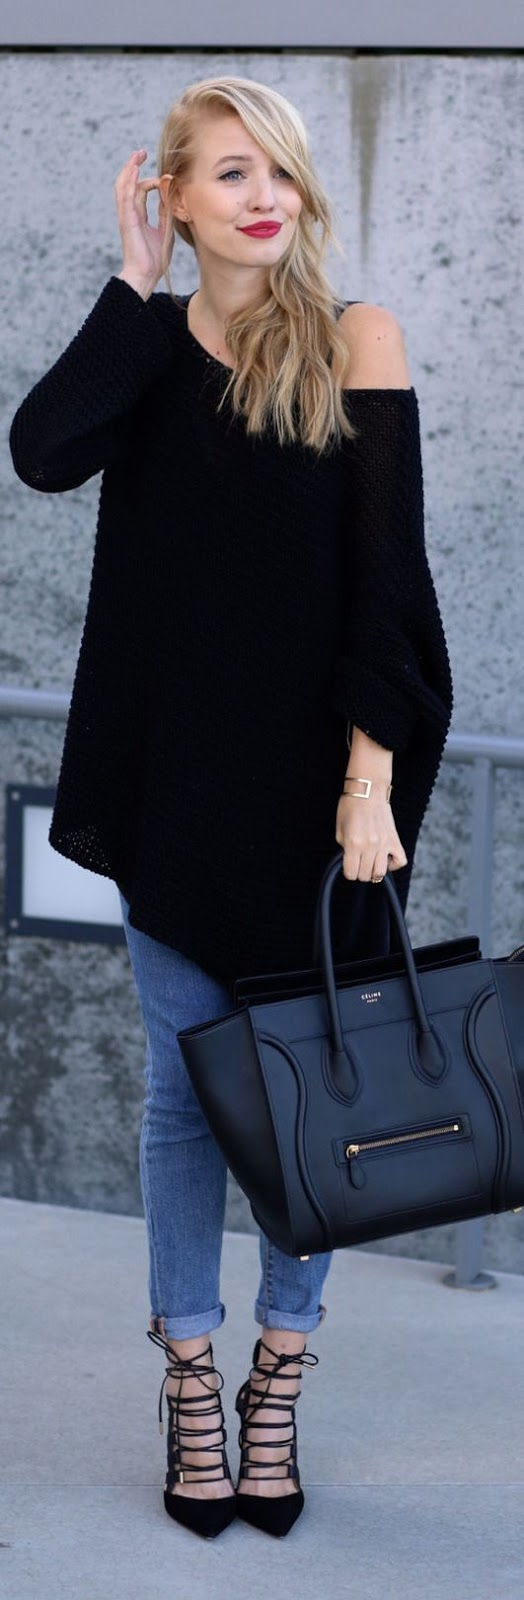 street style oversize off the shoulder black sweater with denim luvtolook curating fashion. Black Bedroom Furniture Sets. Home Design Ideas